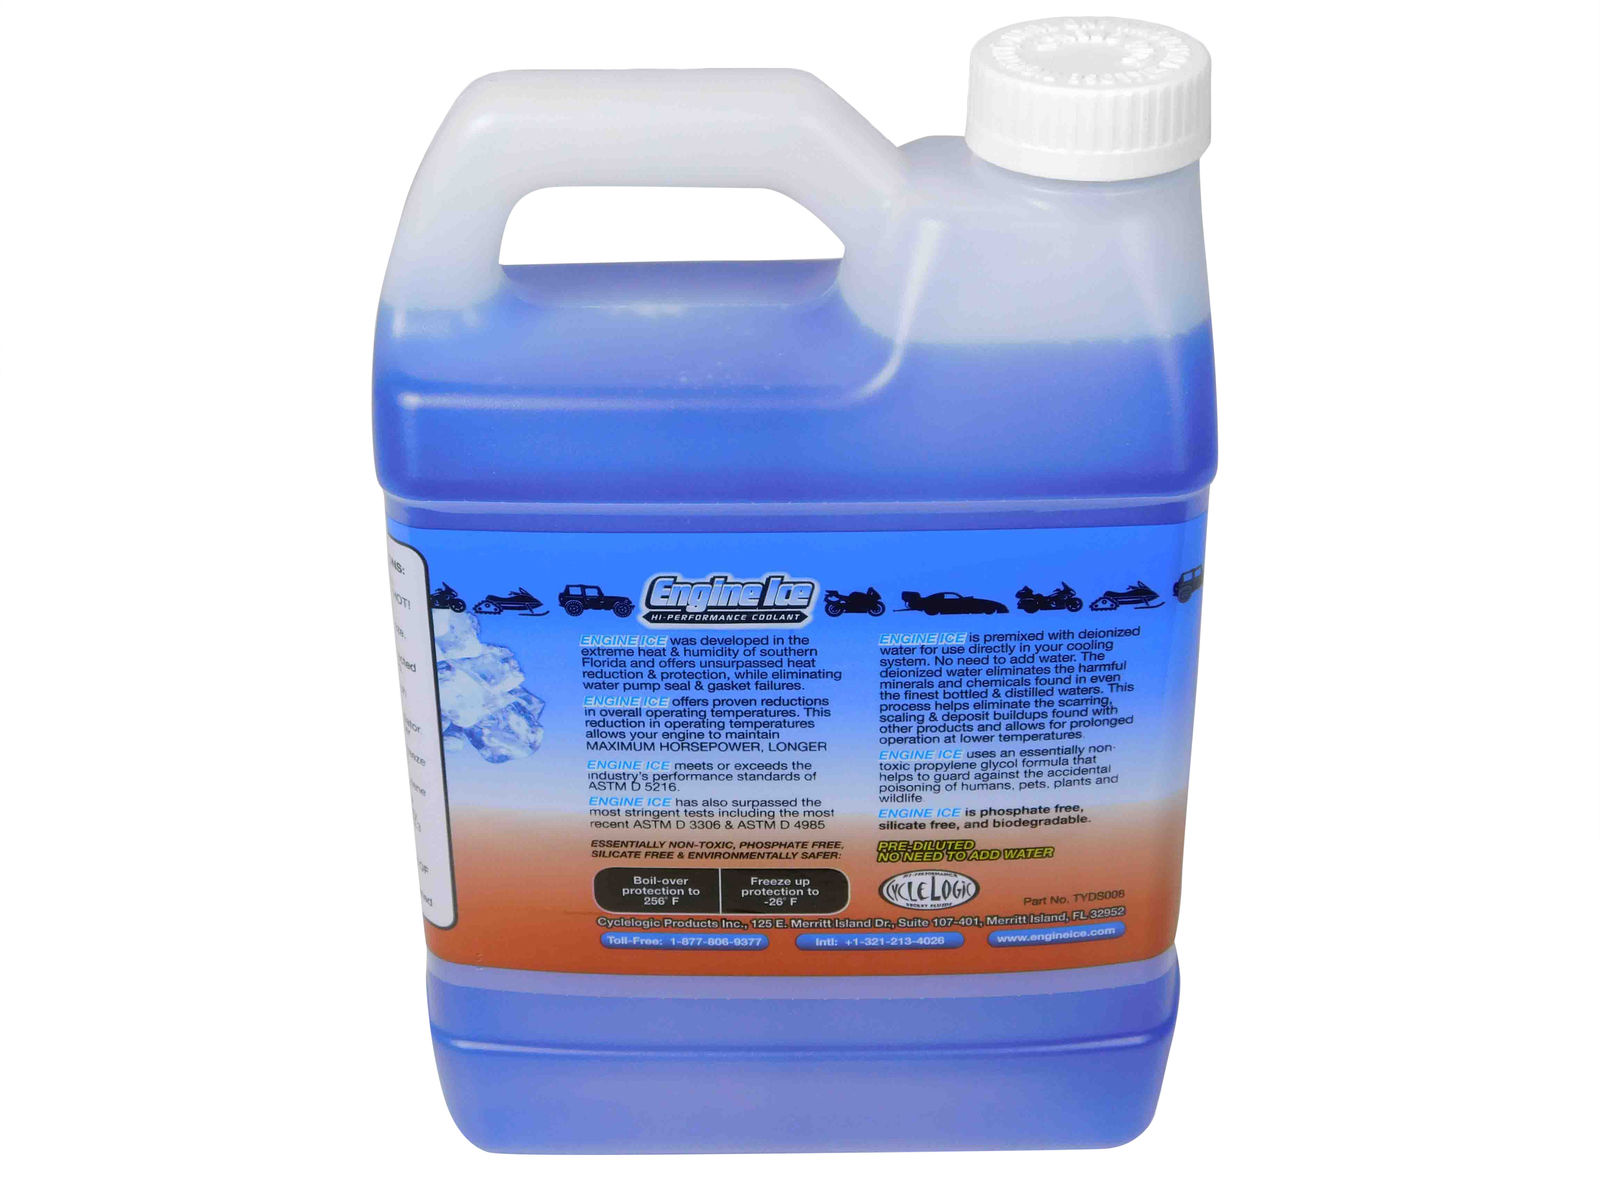 Engine-Ice-TYDS008-03-High-Performance-Coolant-0.5-gallon-6-Pack-image-3